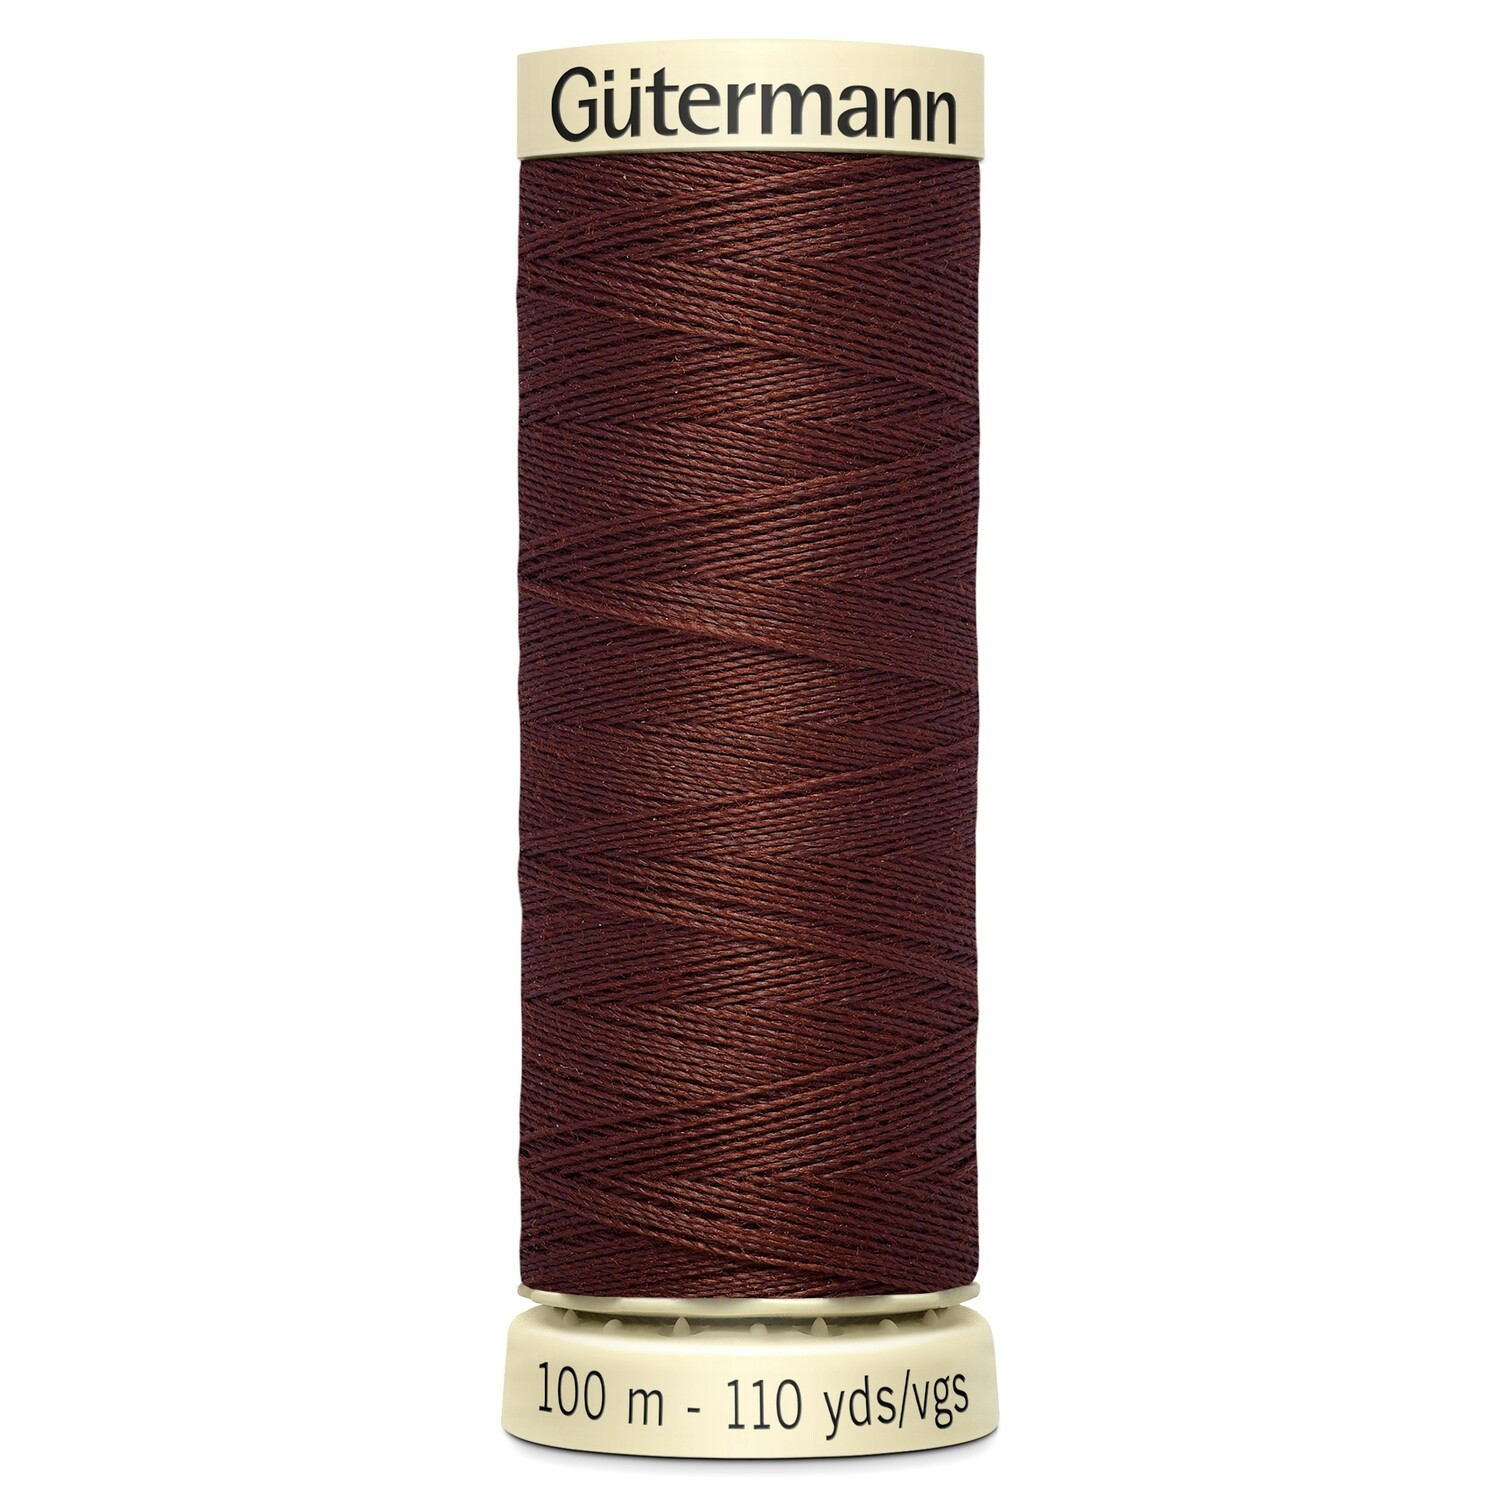 Gutermann Sew-All thread 230